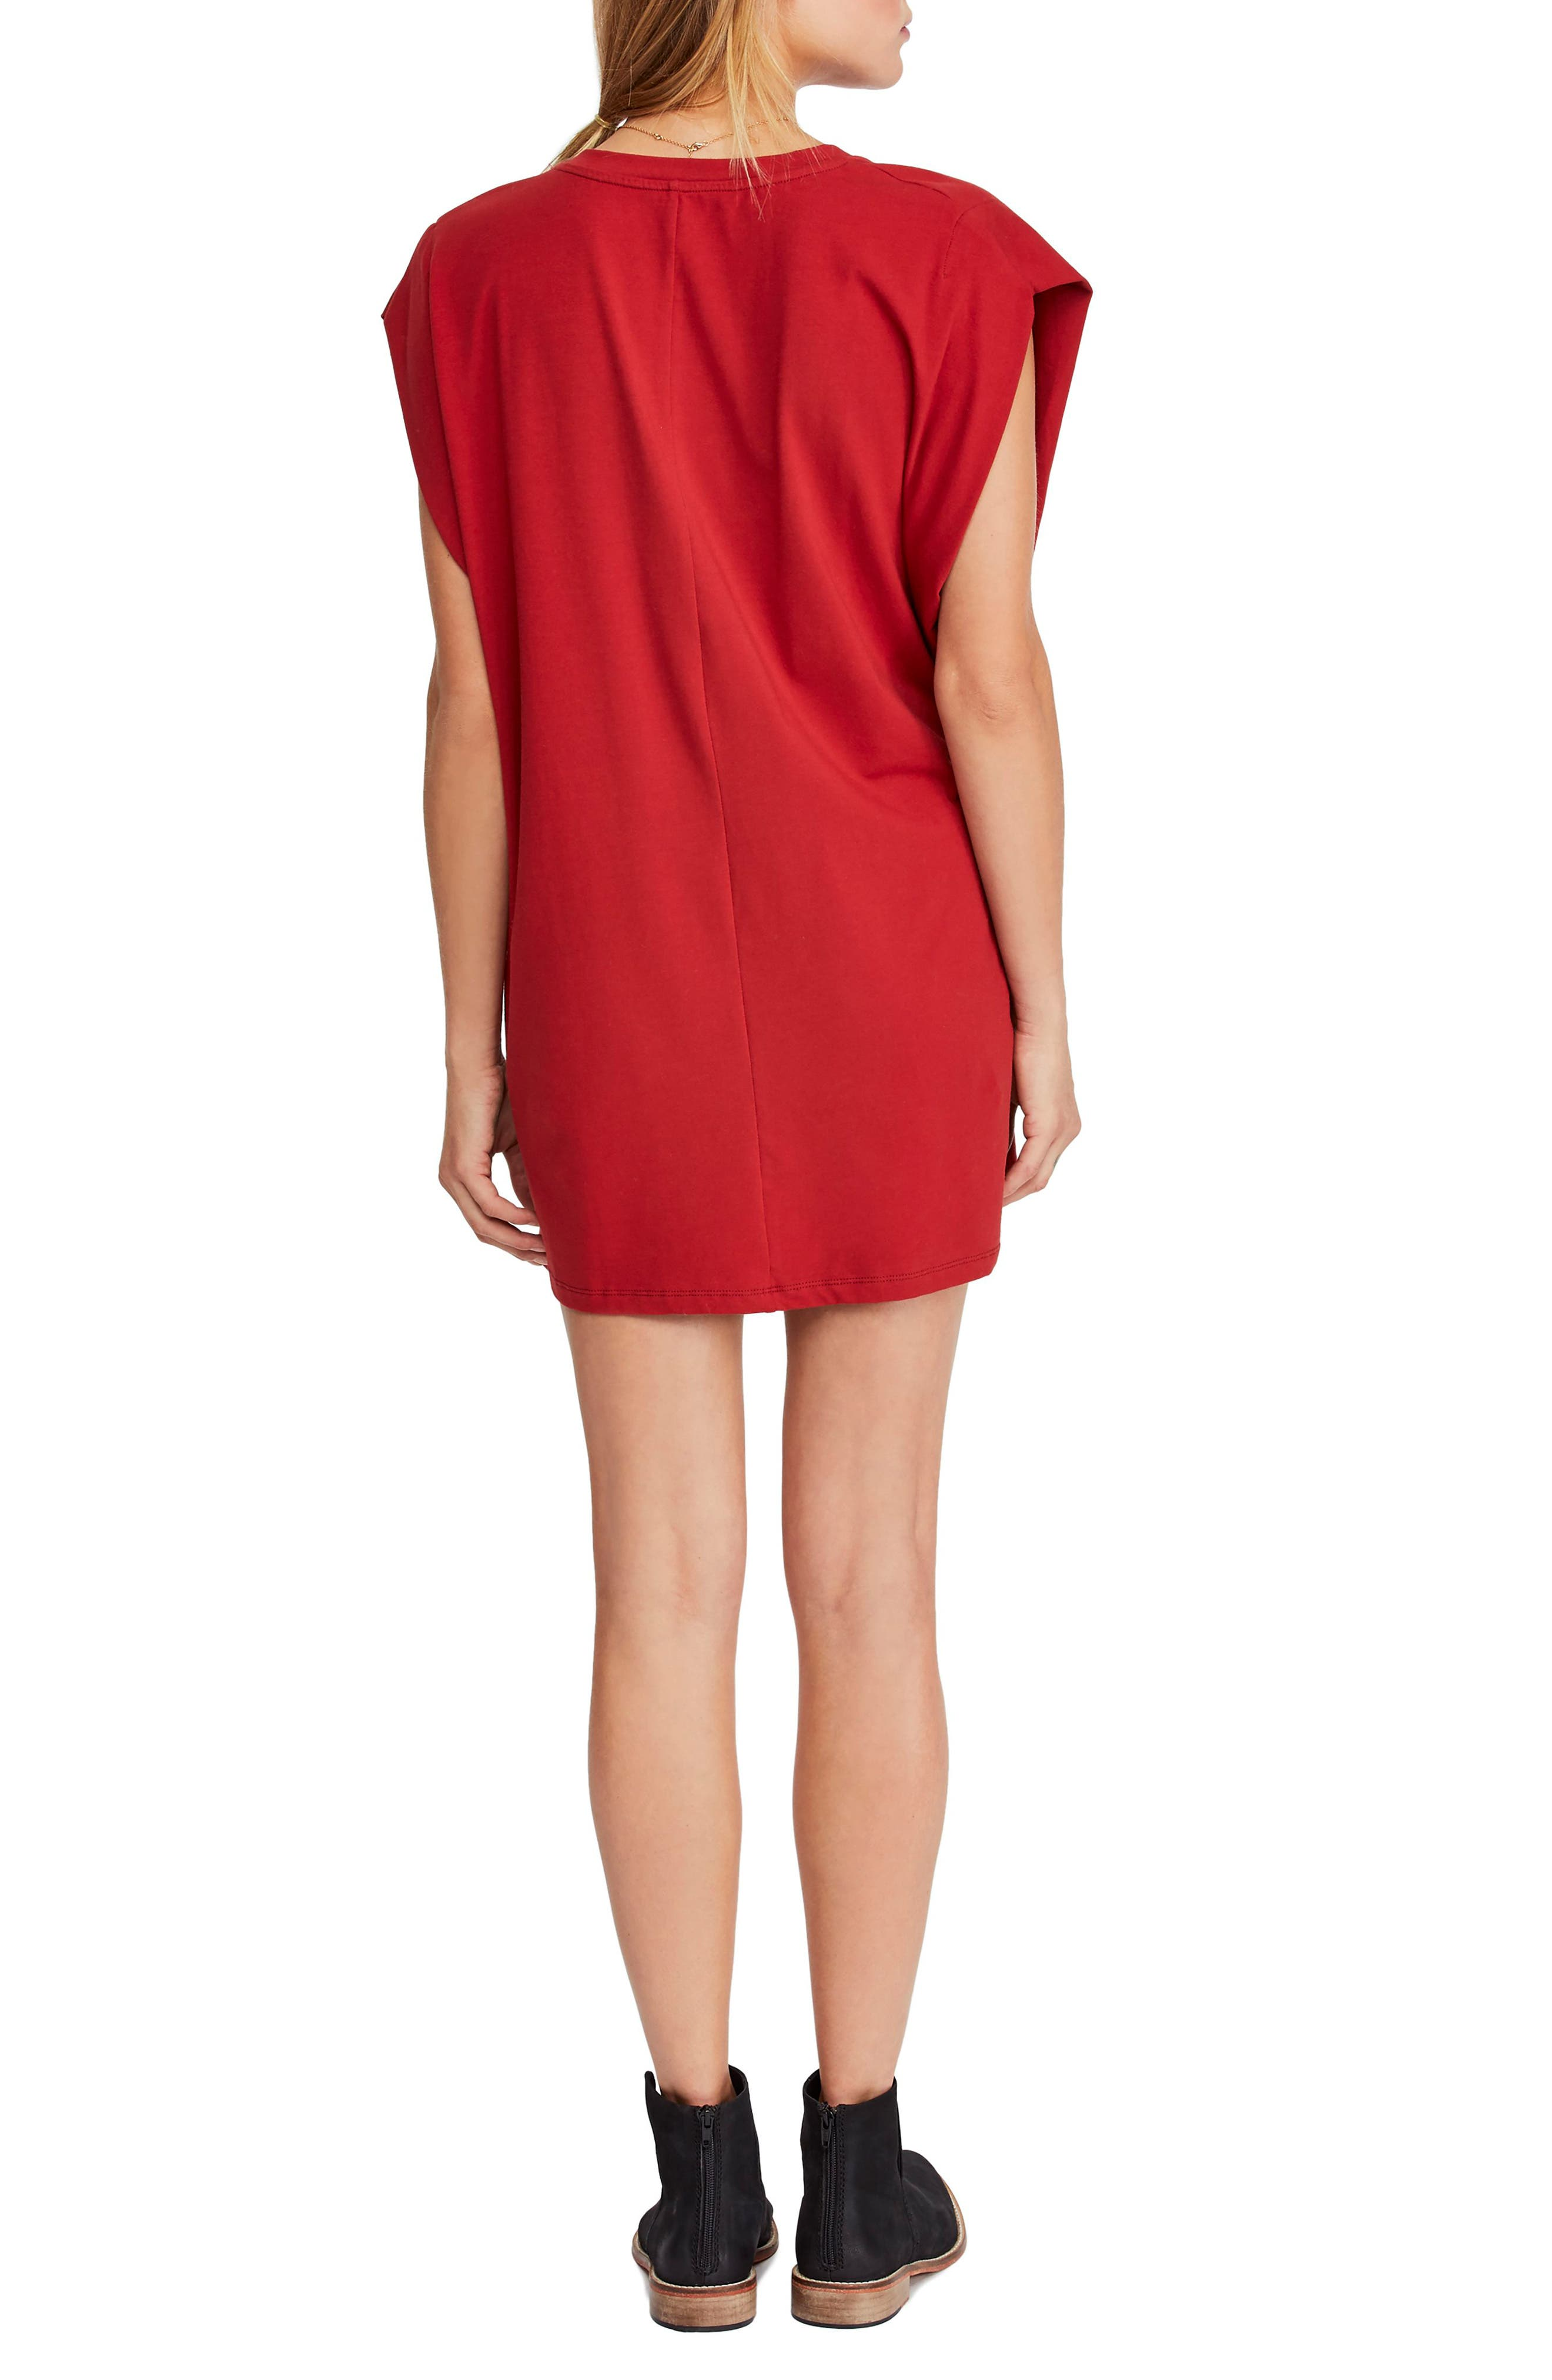 FREE PEOPLE, Bianca Shift Dress, Alternate thumbnail 2, color, RED